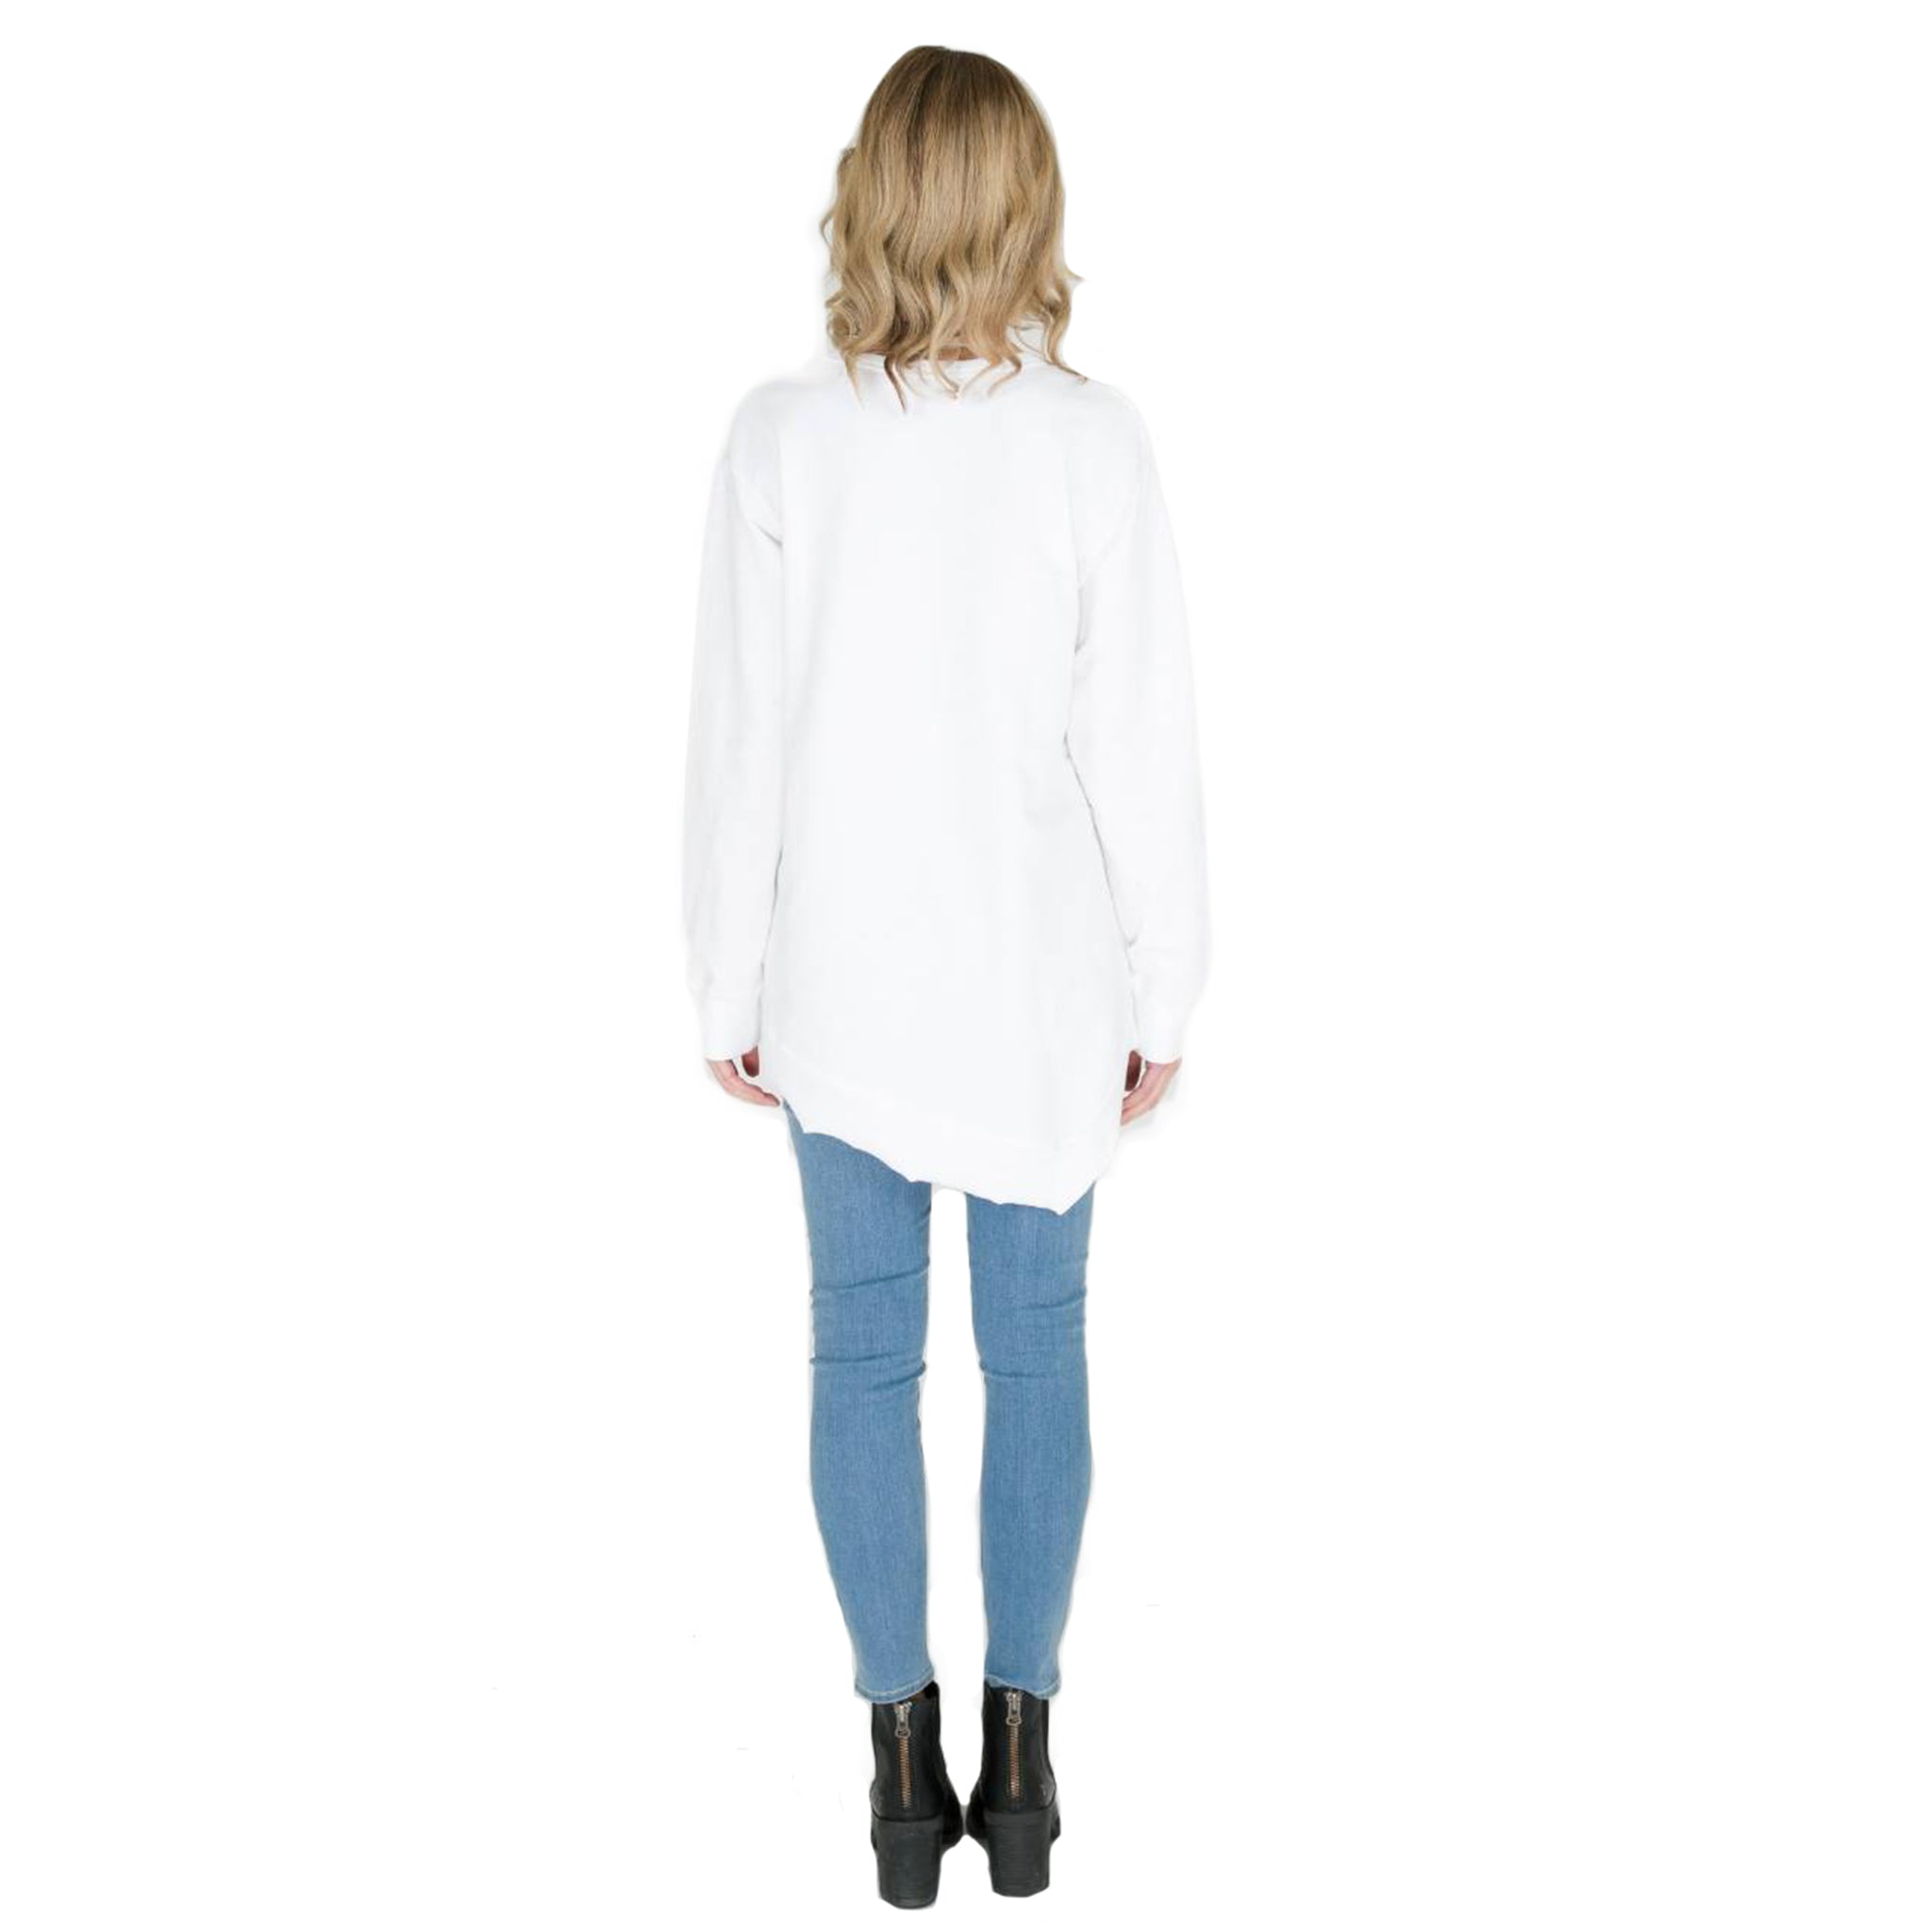 Ulverstone Sweater in White